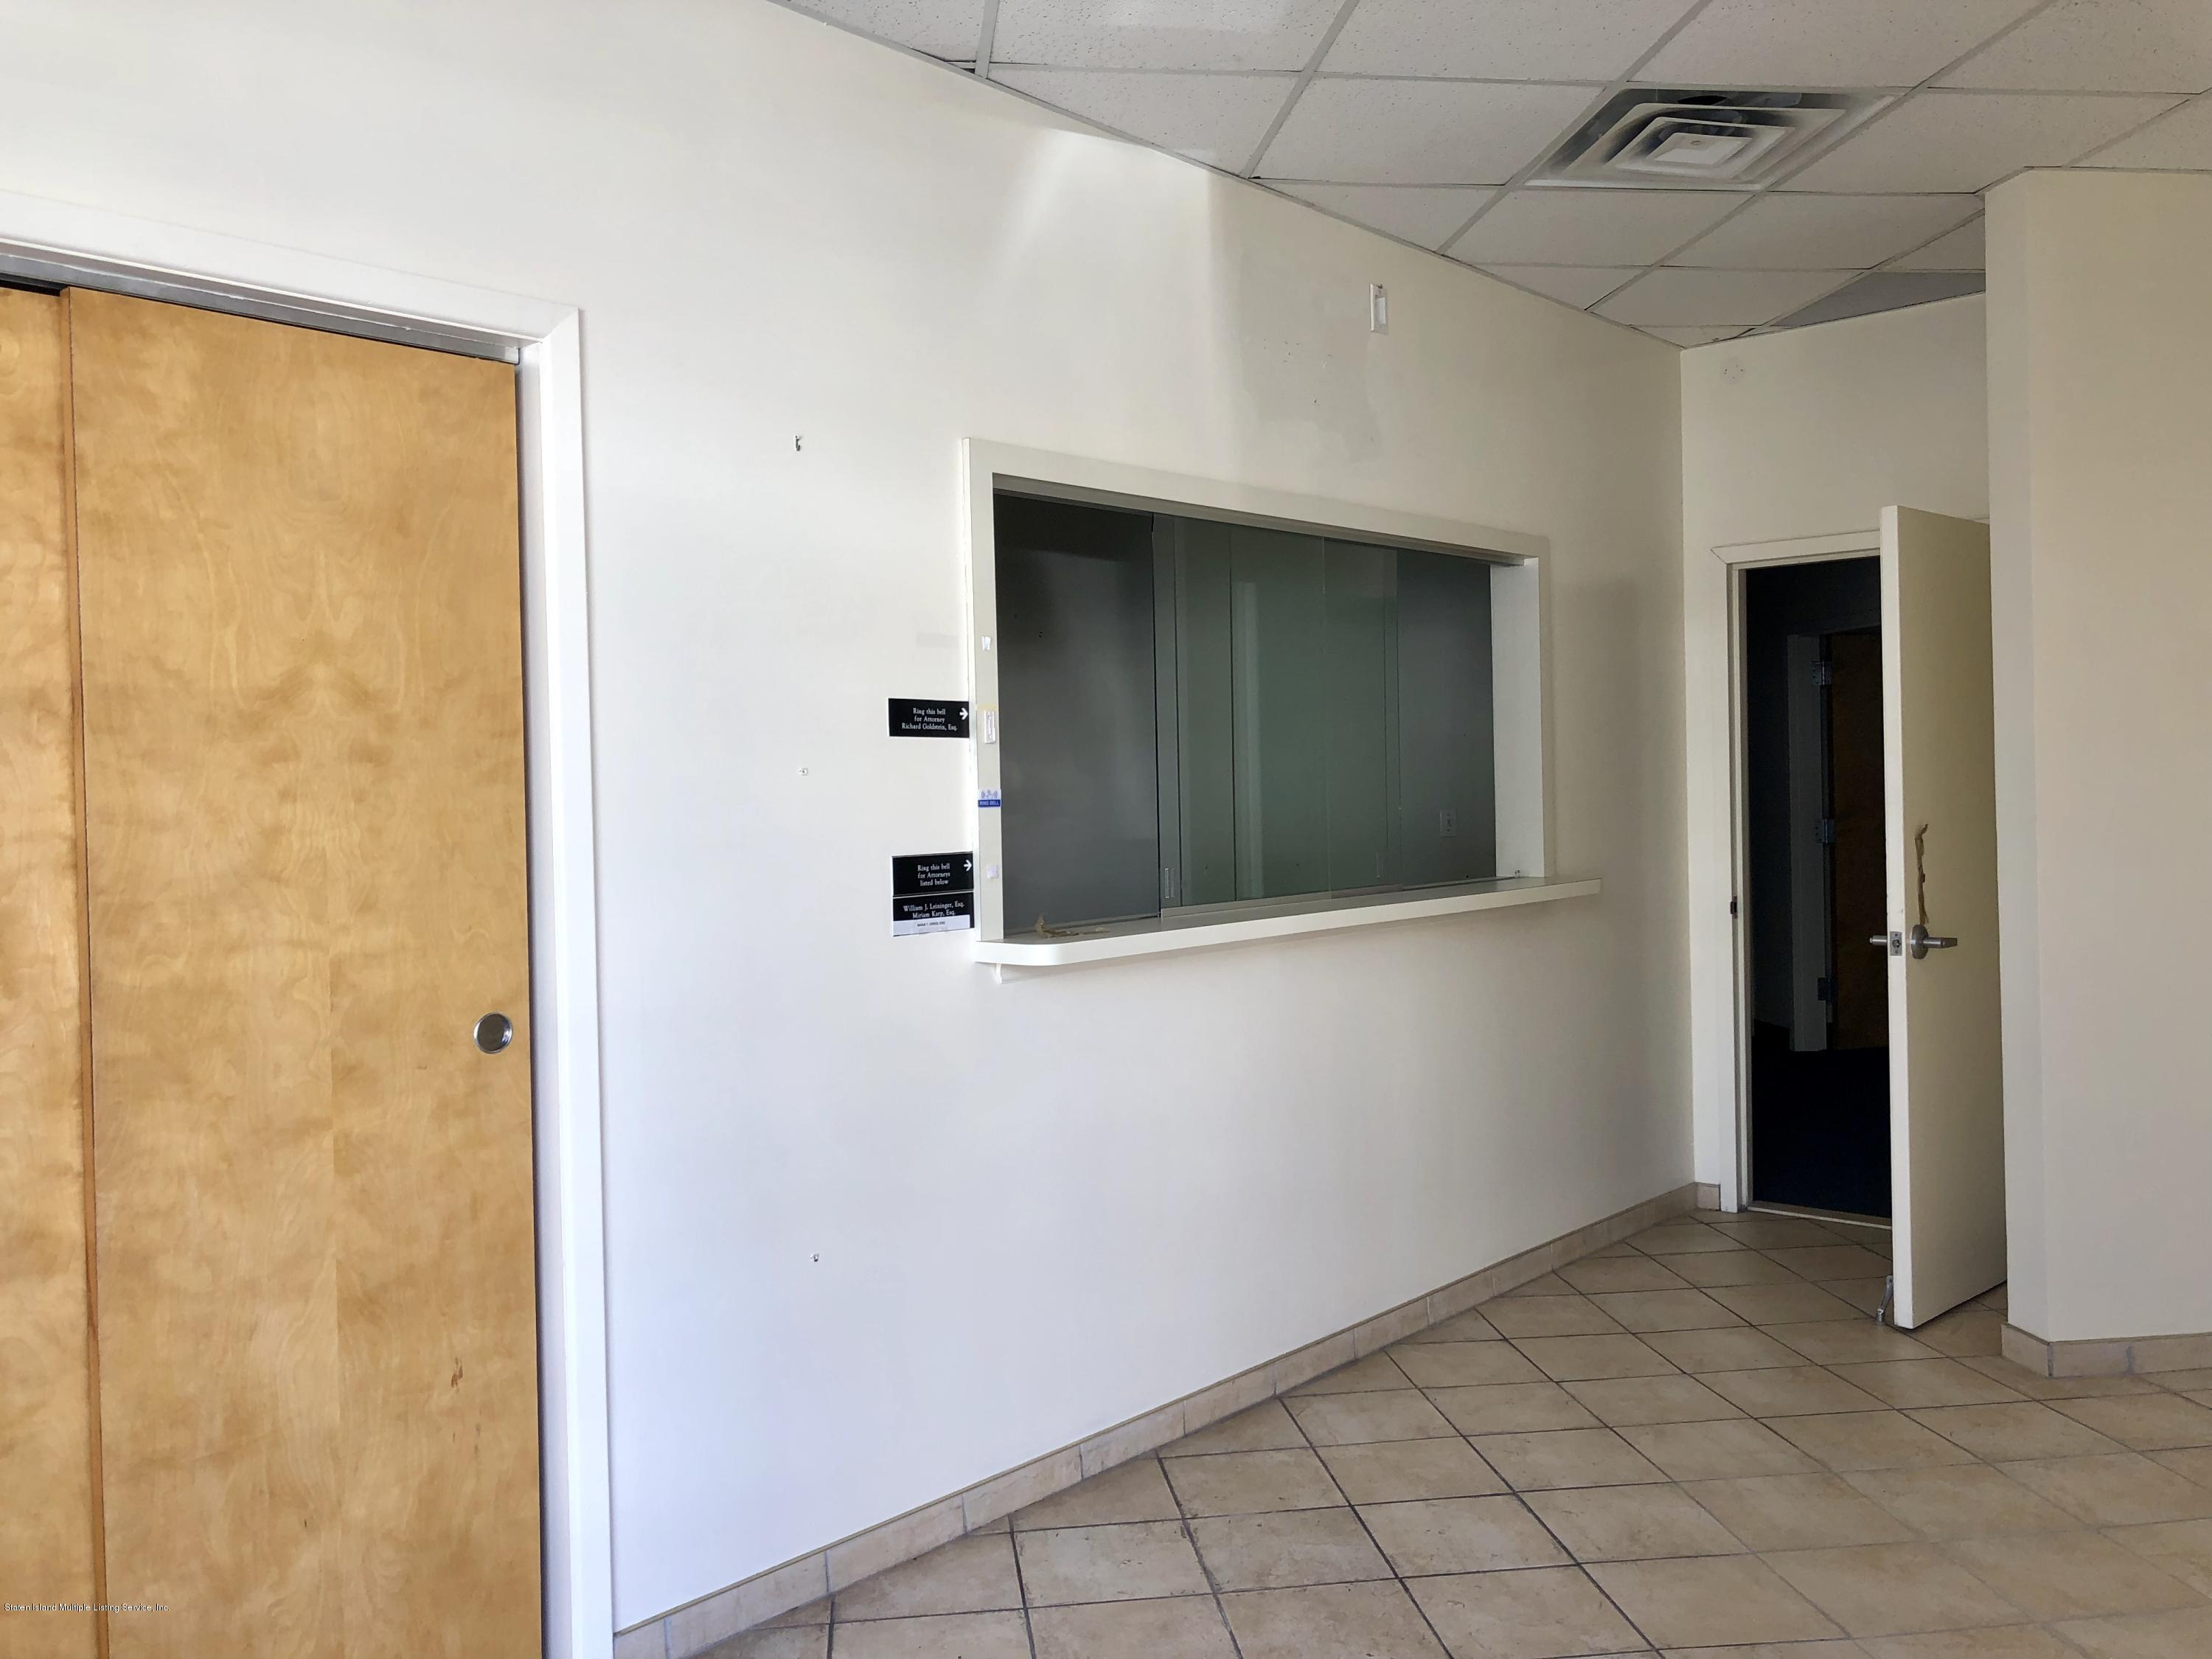 Commercial 34 Dumont Avenue  Staten Island, NY 10305, MLS-1137690-3